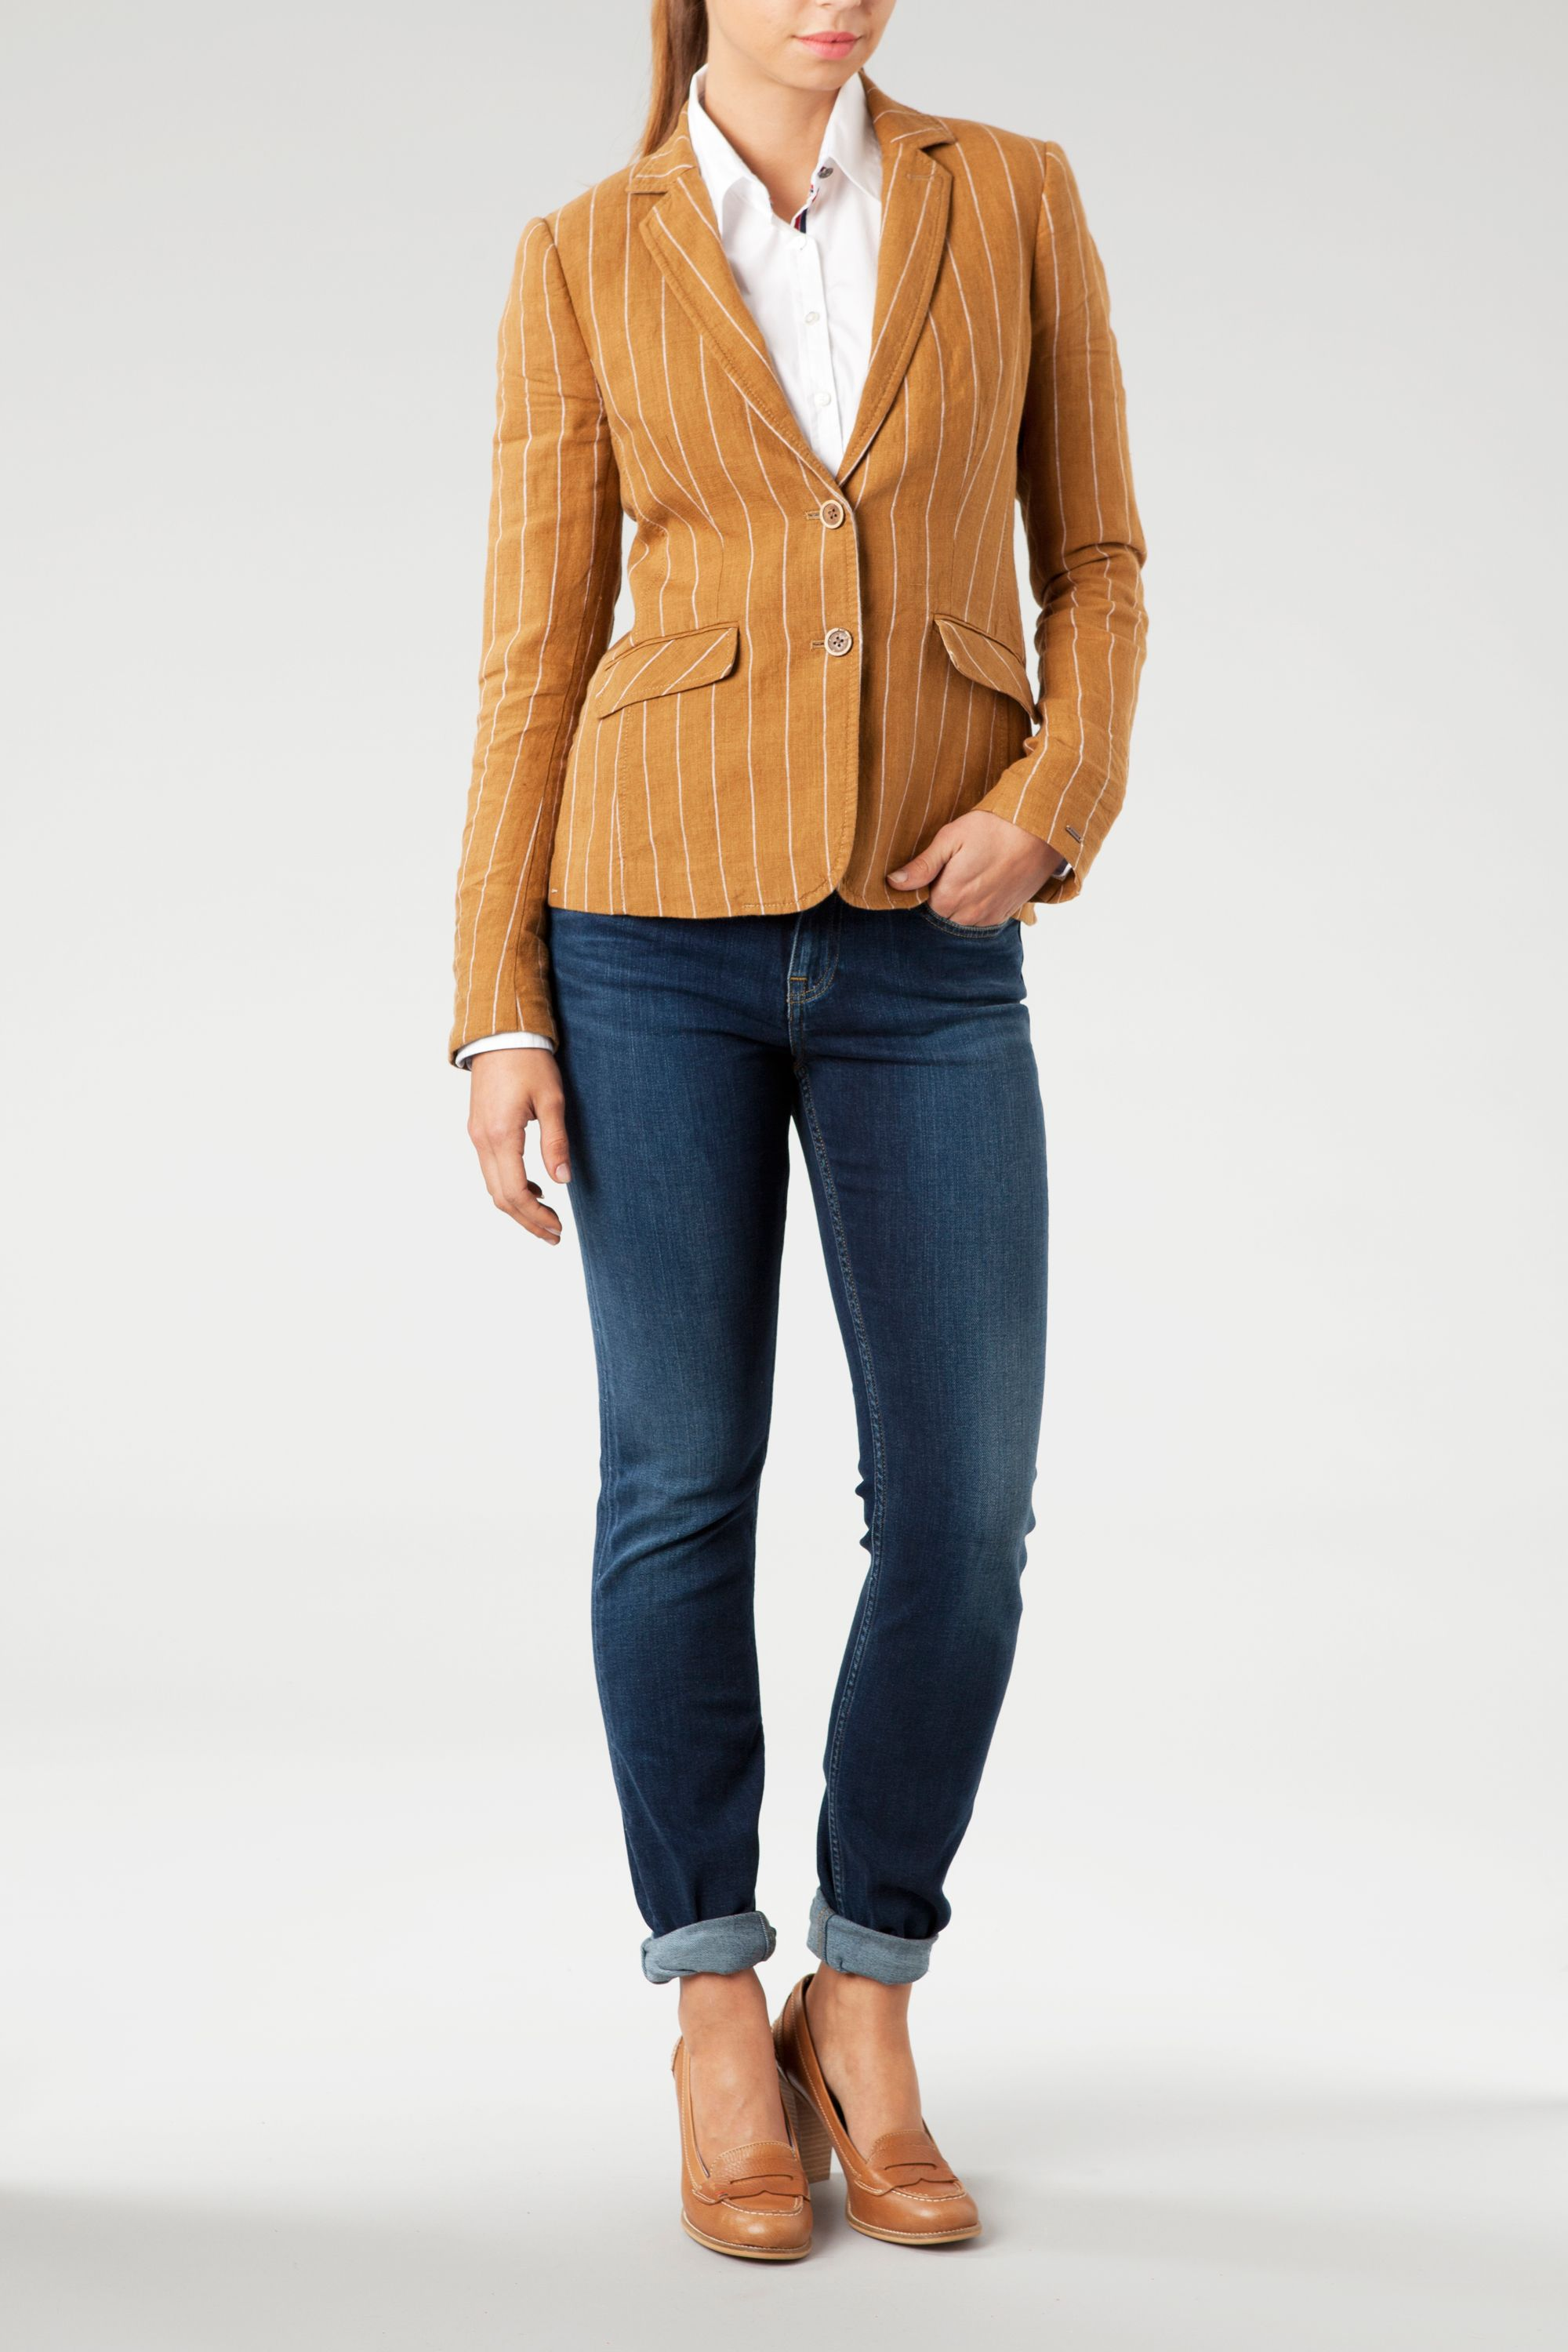 Quinn new york blazer